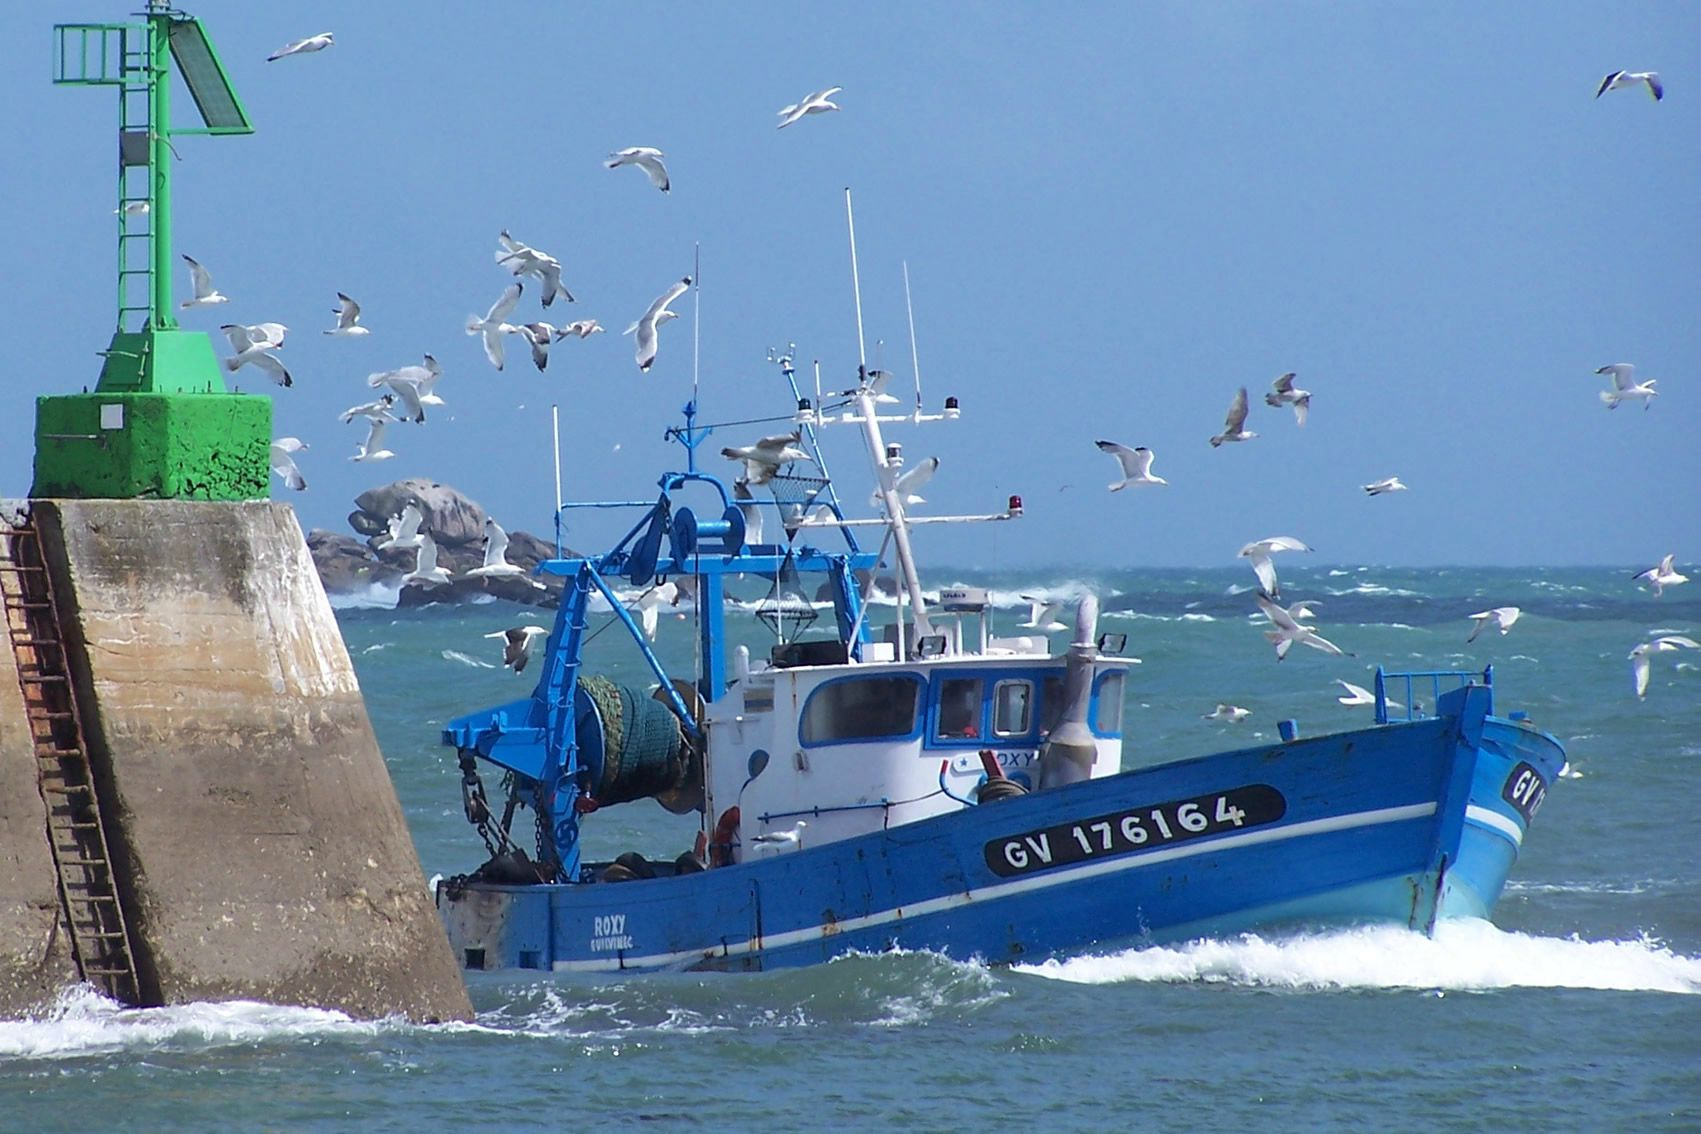 A fishing boat arriving into the port of le Guilvinec.